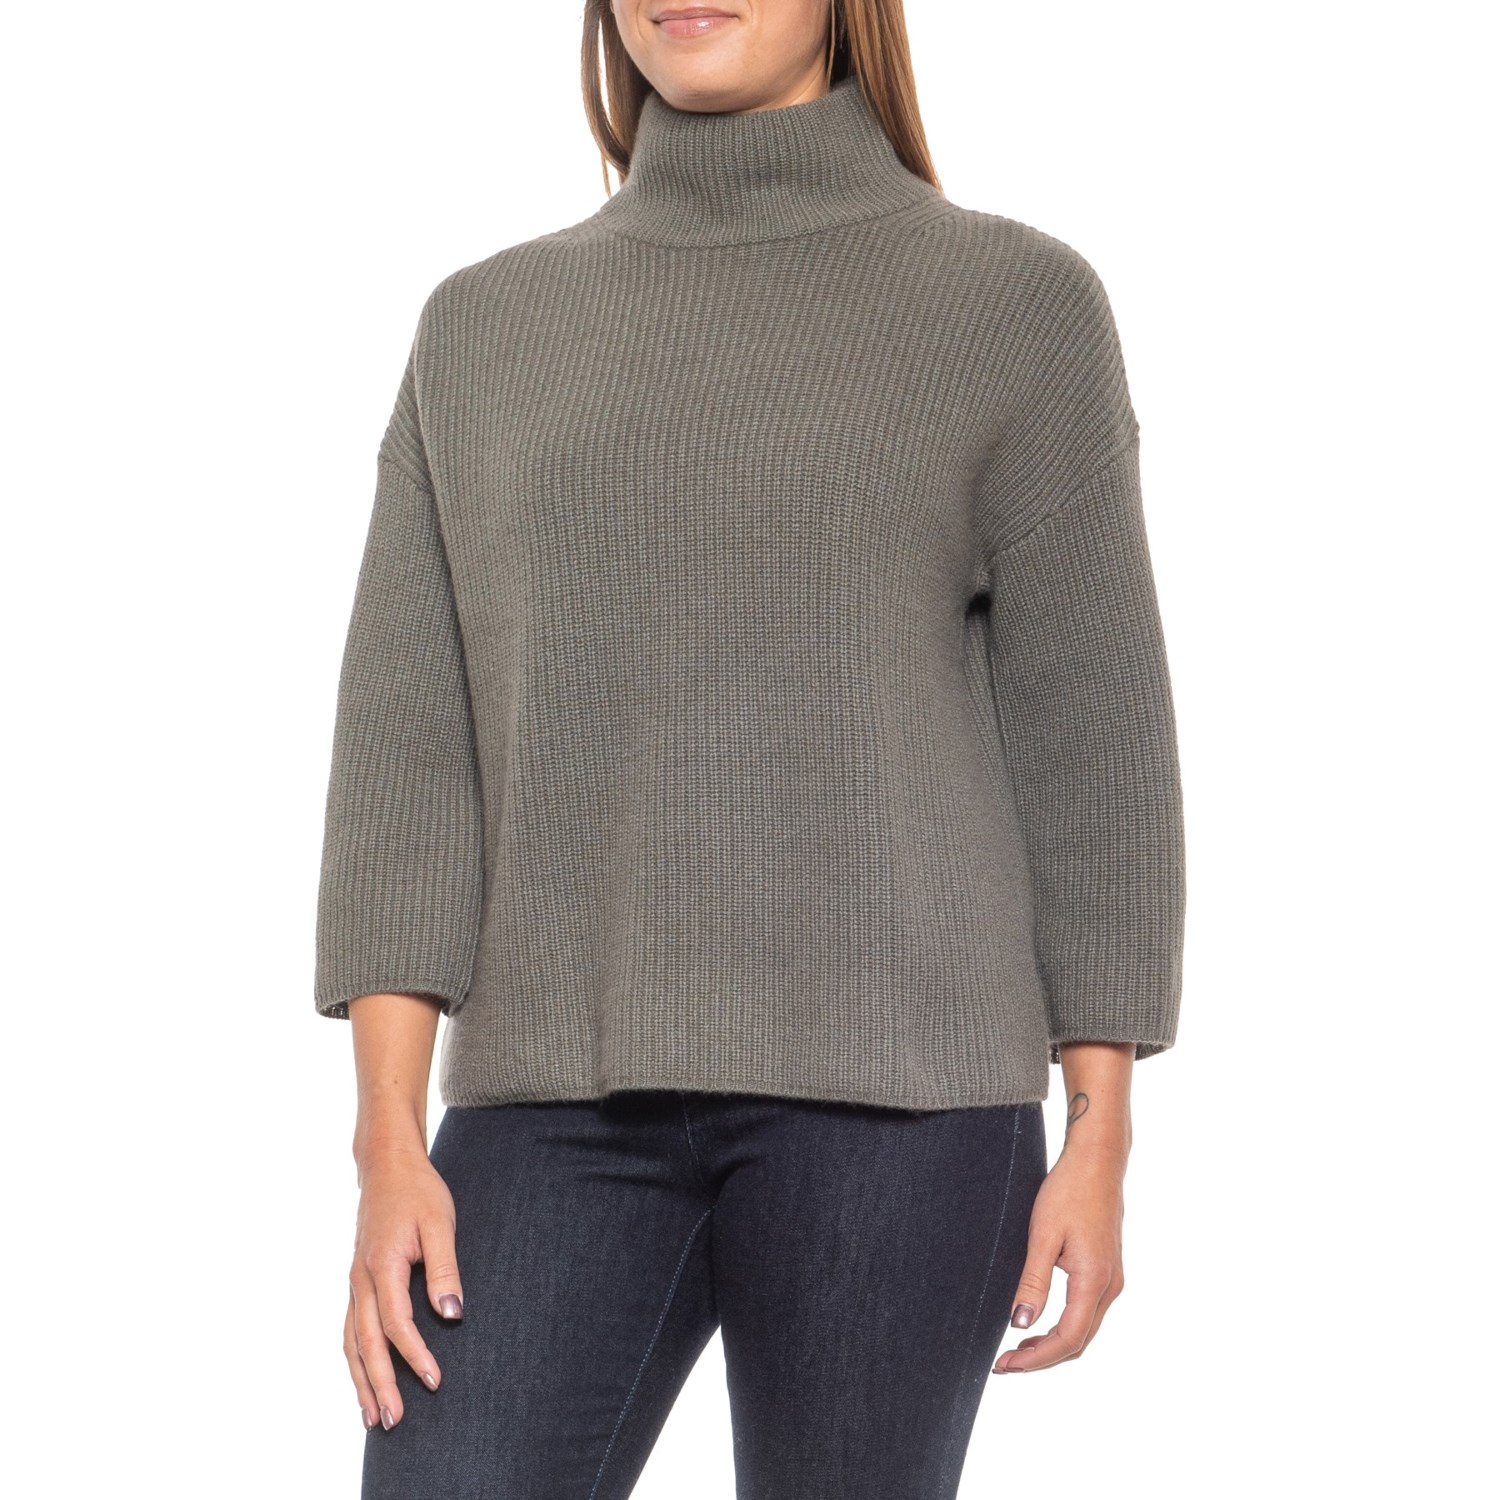 Rachel Zoe 100% Cashmere Pine Grove Mock Neck Sweater (For